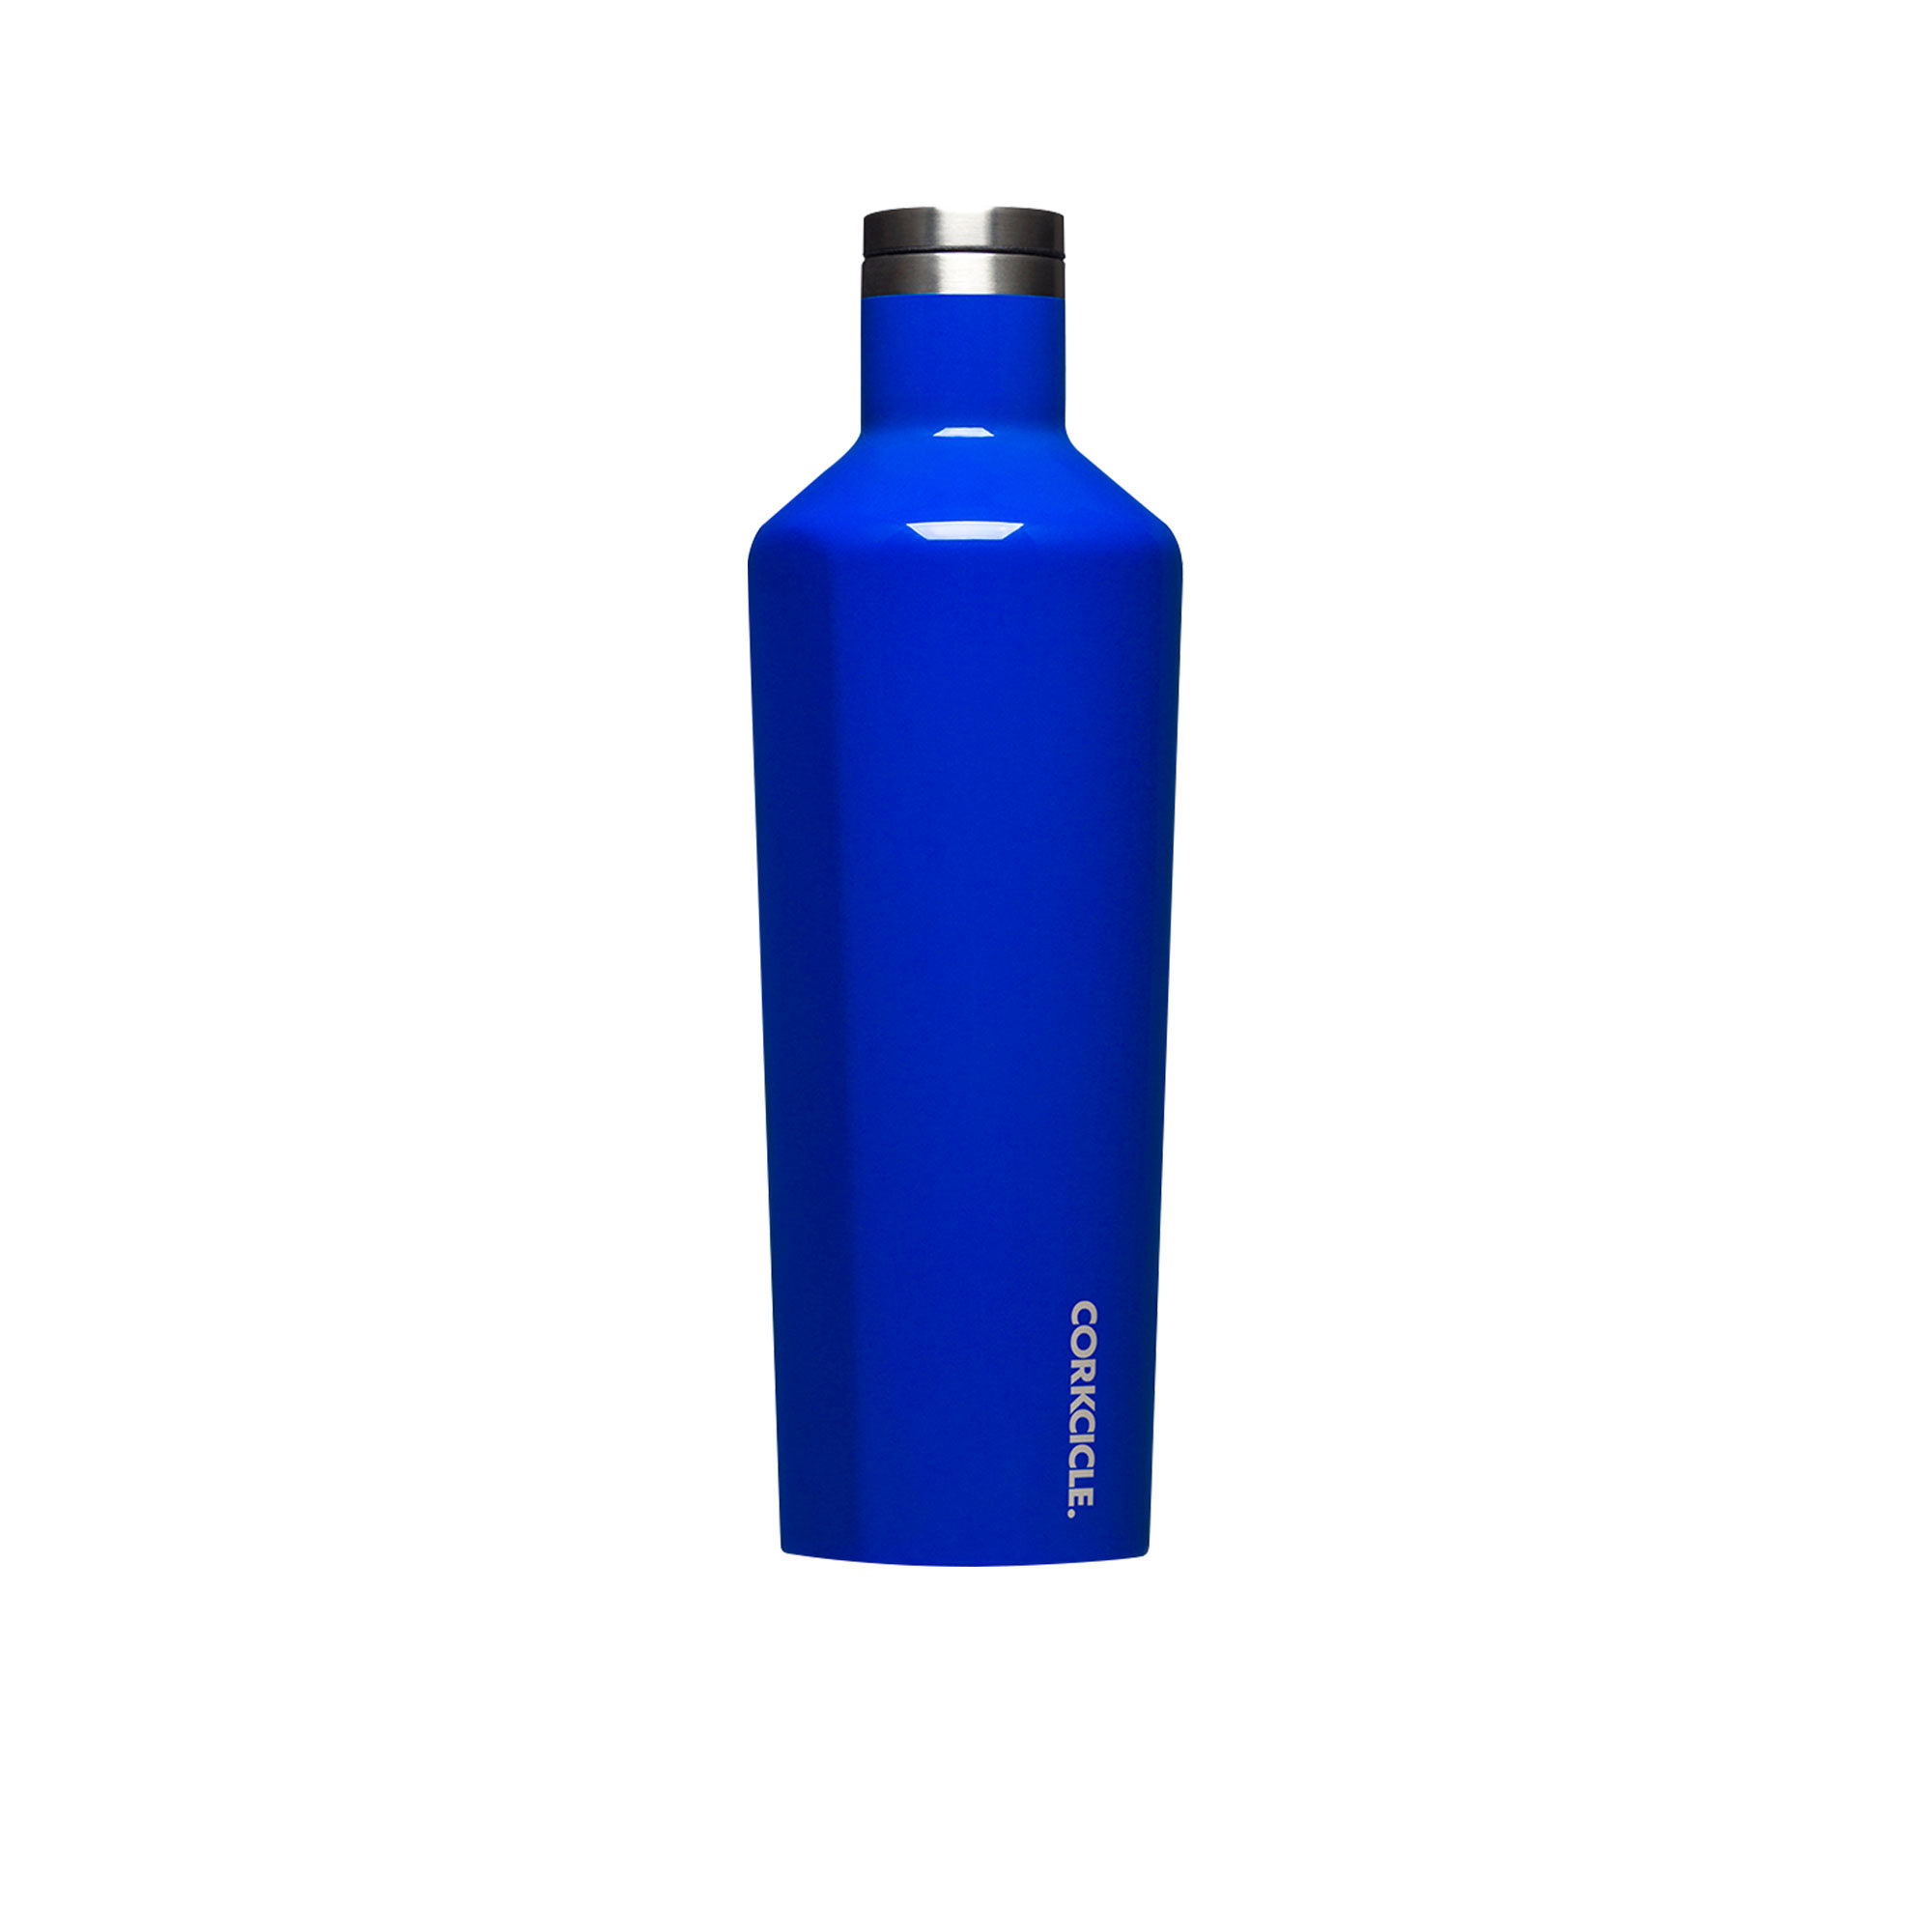 Corkcicle Classic Canteen Insulated Drink Bottle 750ml Cobalt